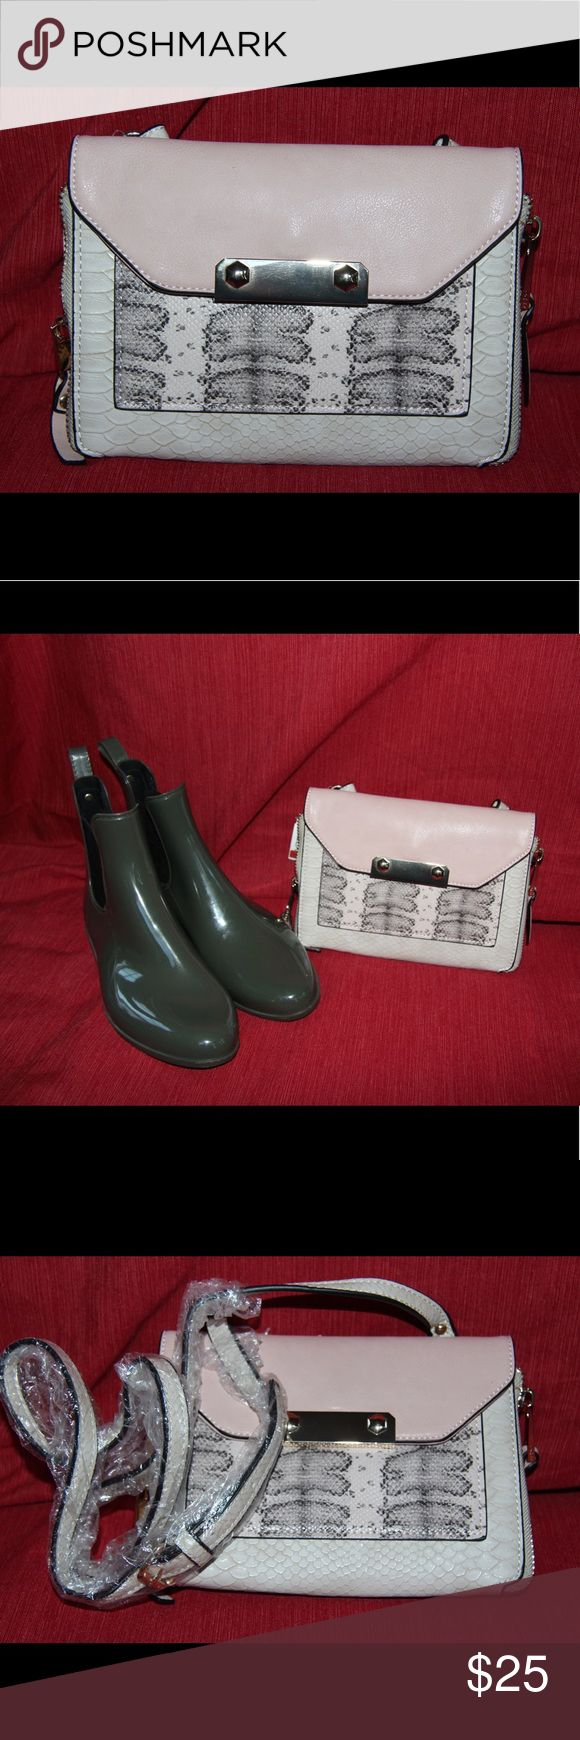 """NWT Aldo petite shoulder bag Bundle 2+ and get %15 discount!  Gentle and stylish shoulder bag by """"Aldo"""", new with tag!   Ankle rain boots are presented for size comparison. (Also available in my closet, Sam Edelman, size 8) Aldo Bags Shoulder Bags"""